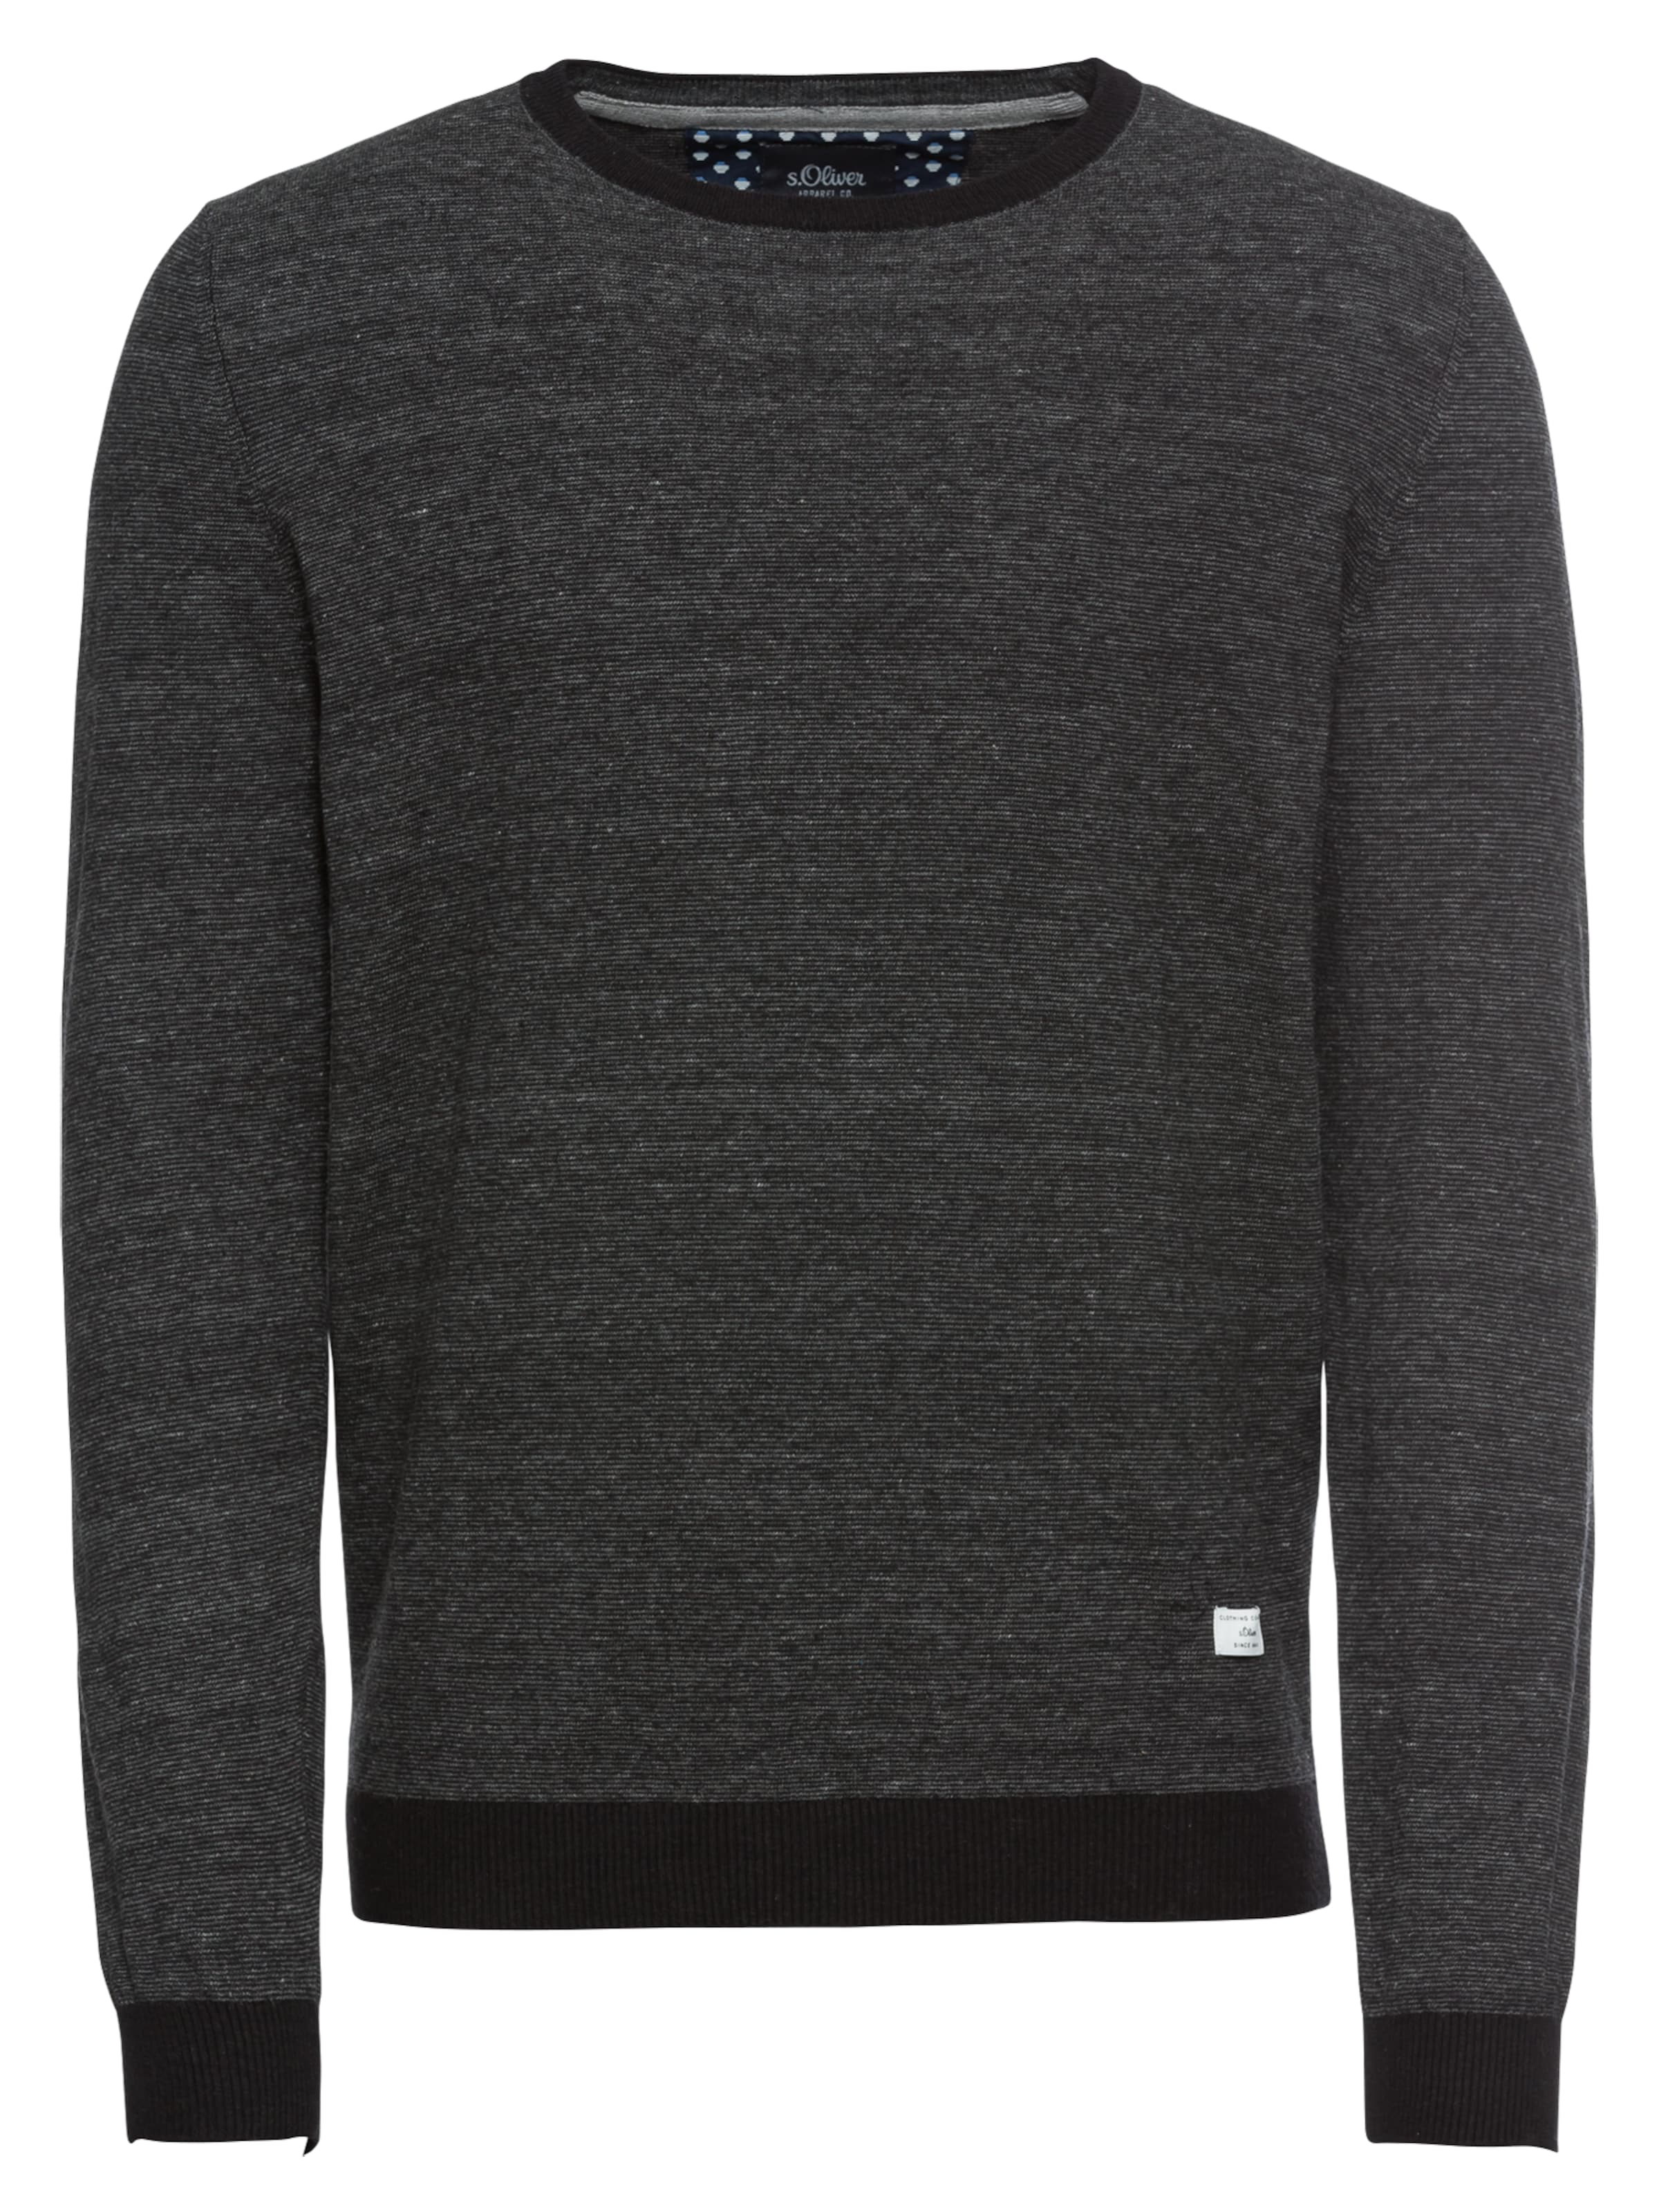 LabelPull In Nuit 'pullover' Bleu oliver over Red S vbf6Y7gy